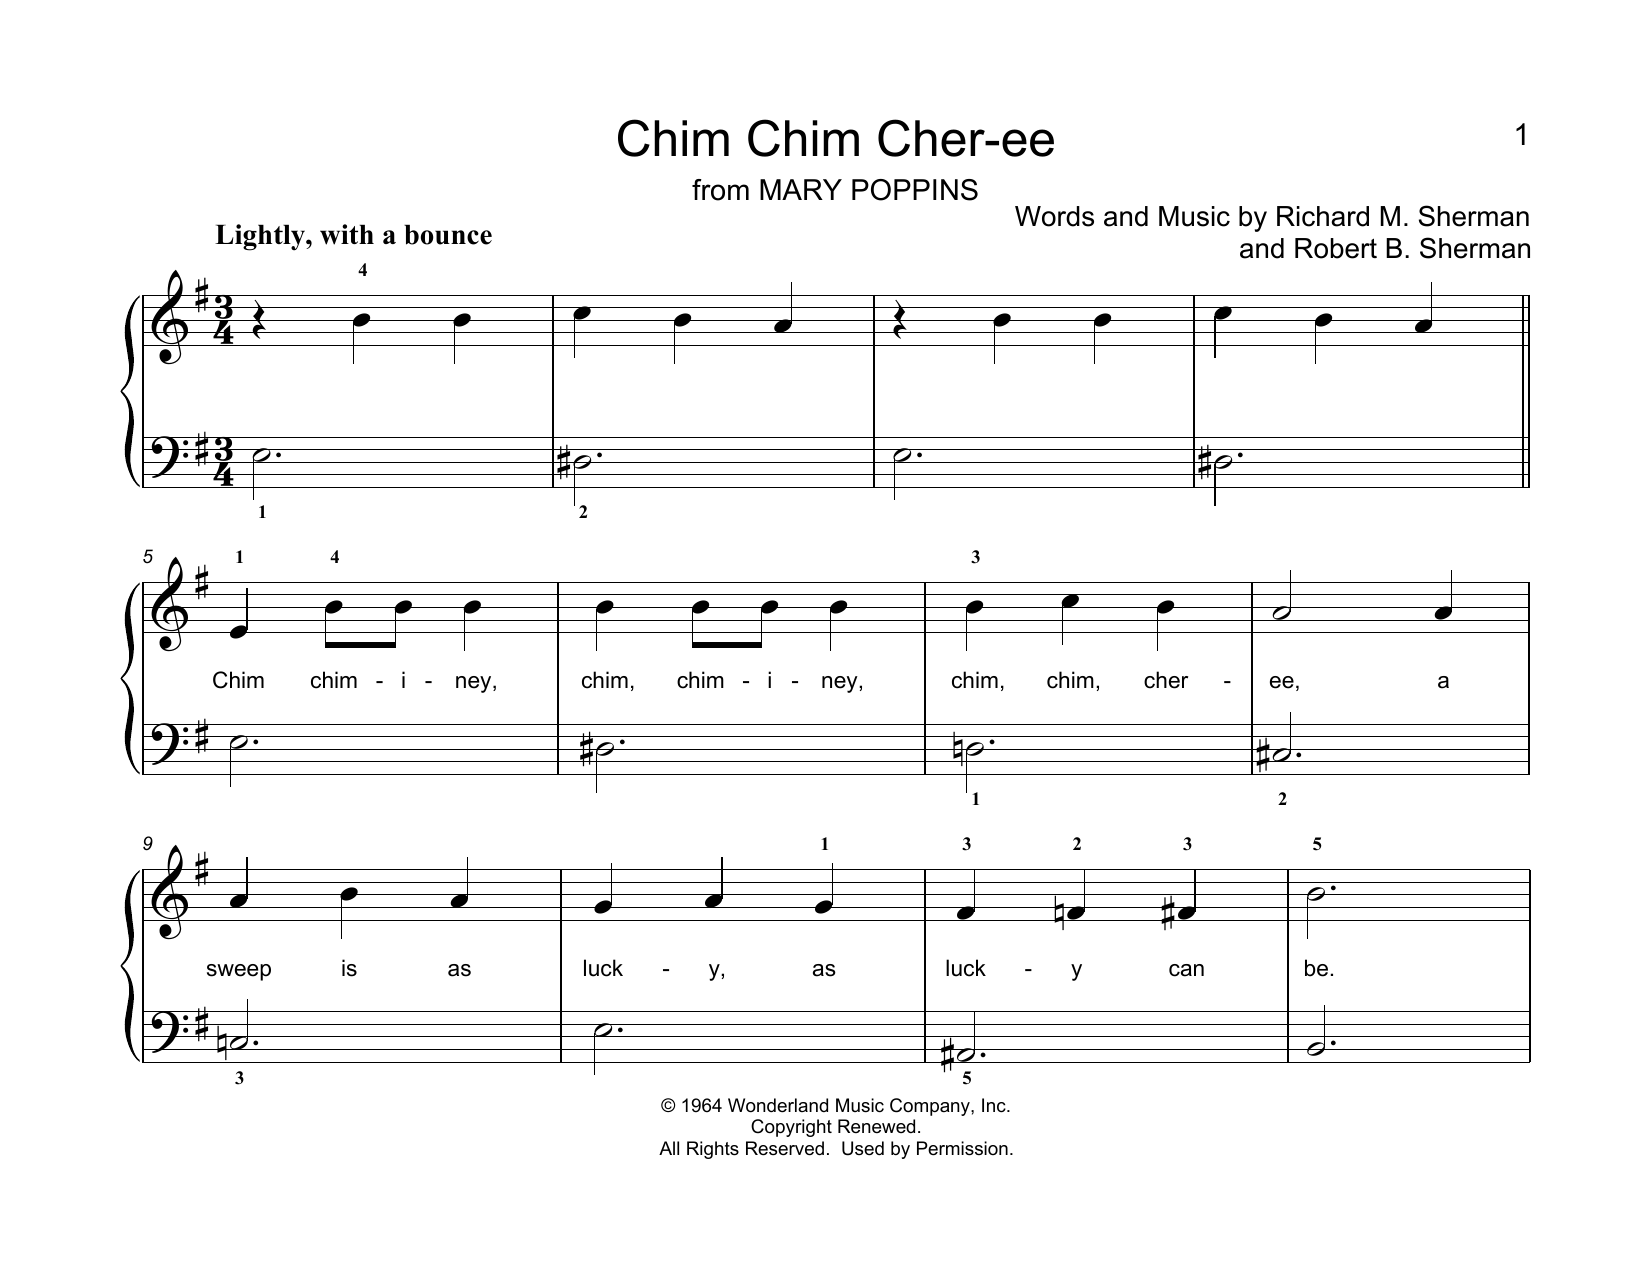 Sherman Brothers Chim Chim Cher-ee (from Mary Poppins) (arr. Christopher Hussey) sheet music notes printable PDF score